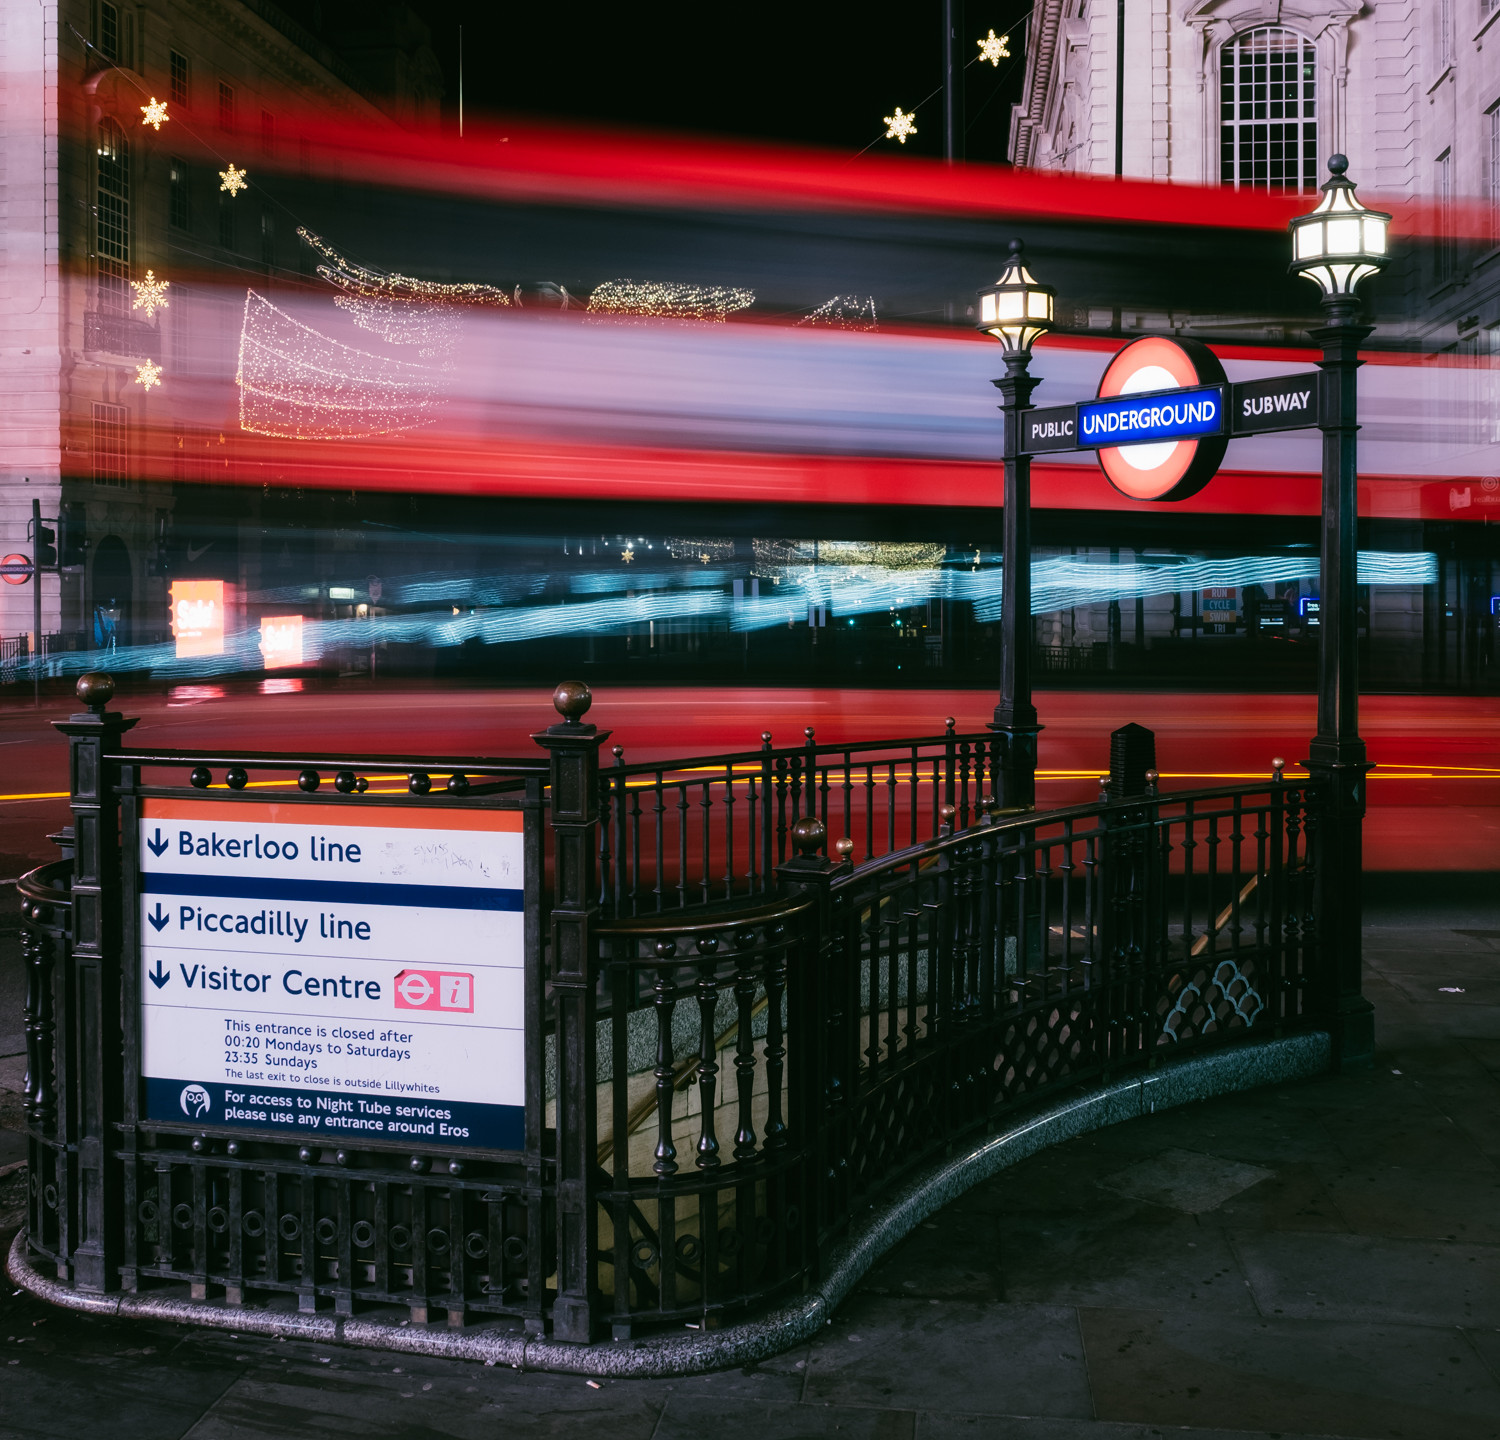 6am, Piccadilly Circus